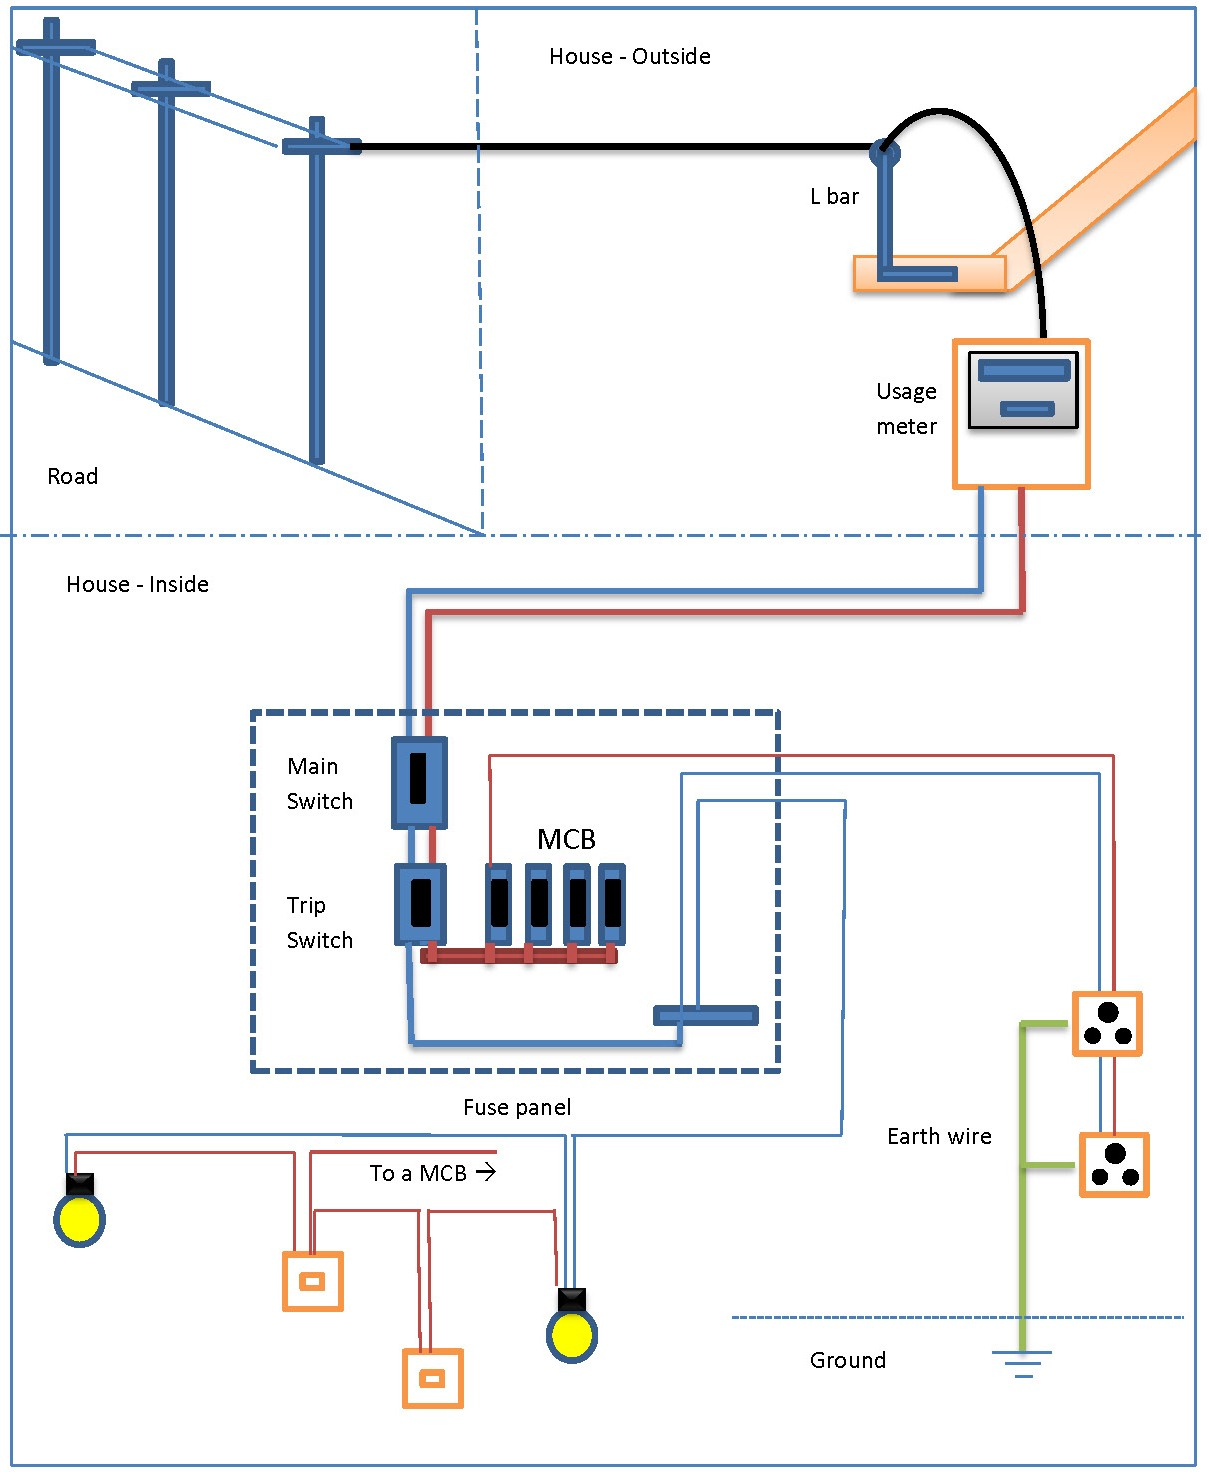 Doc3 senasum's blog house wiring diagram sri lanka house wiring diagrams at crackthecode.co